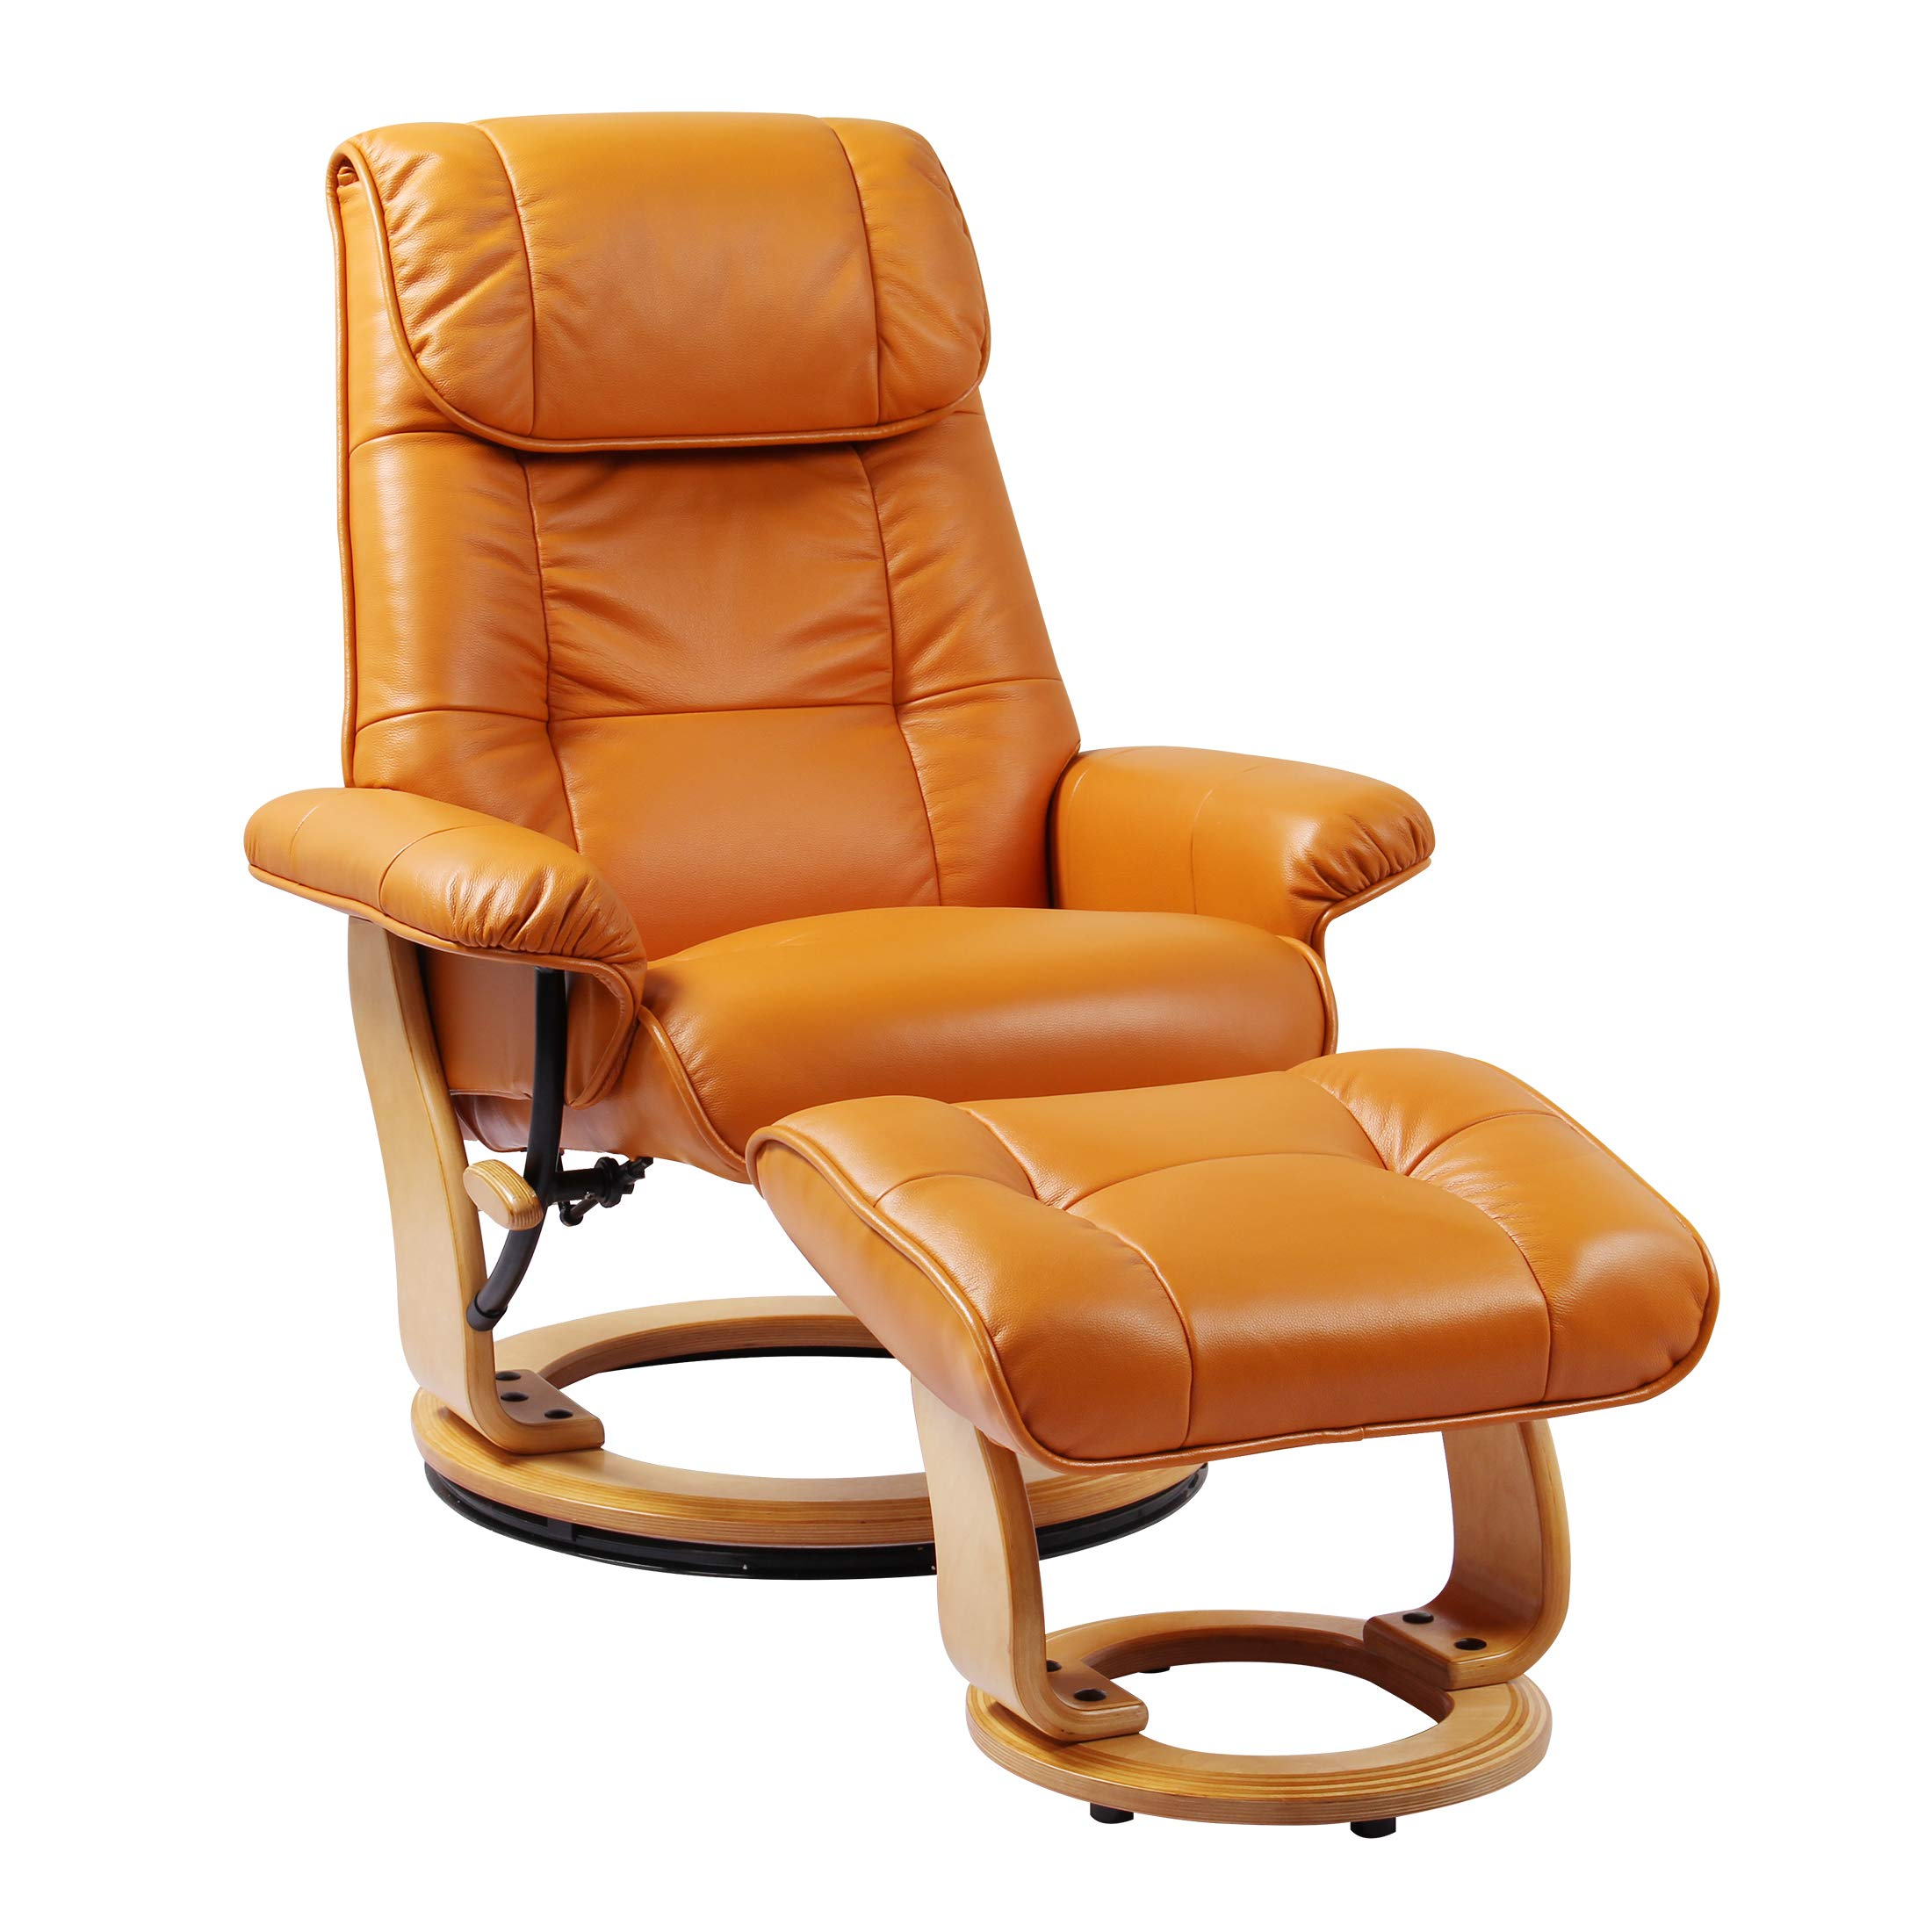 Coja by Sofa4life Leather Recliner and Ottoman, Orange by Coja